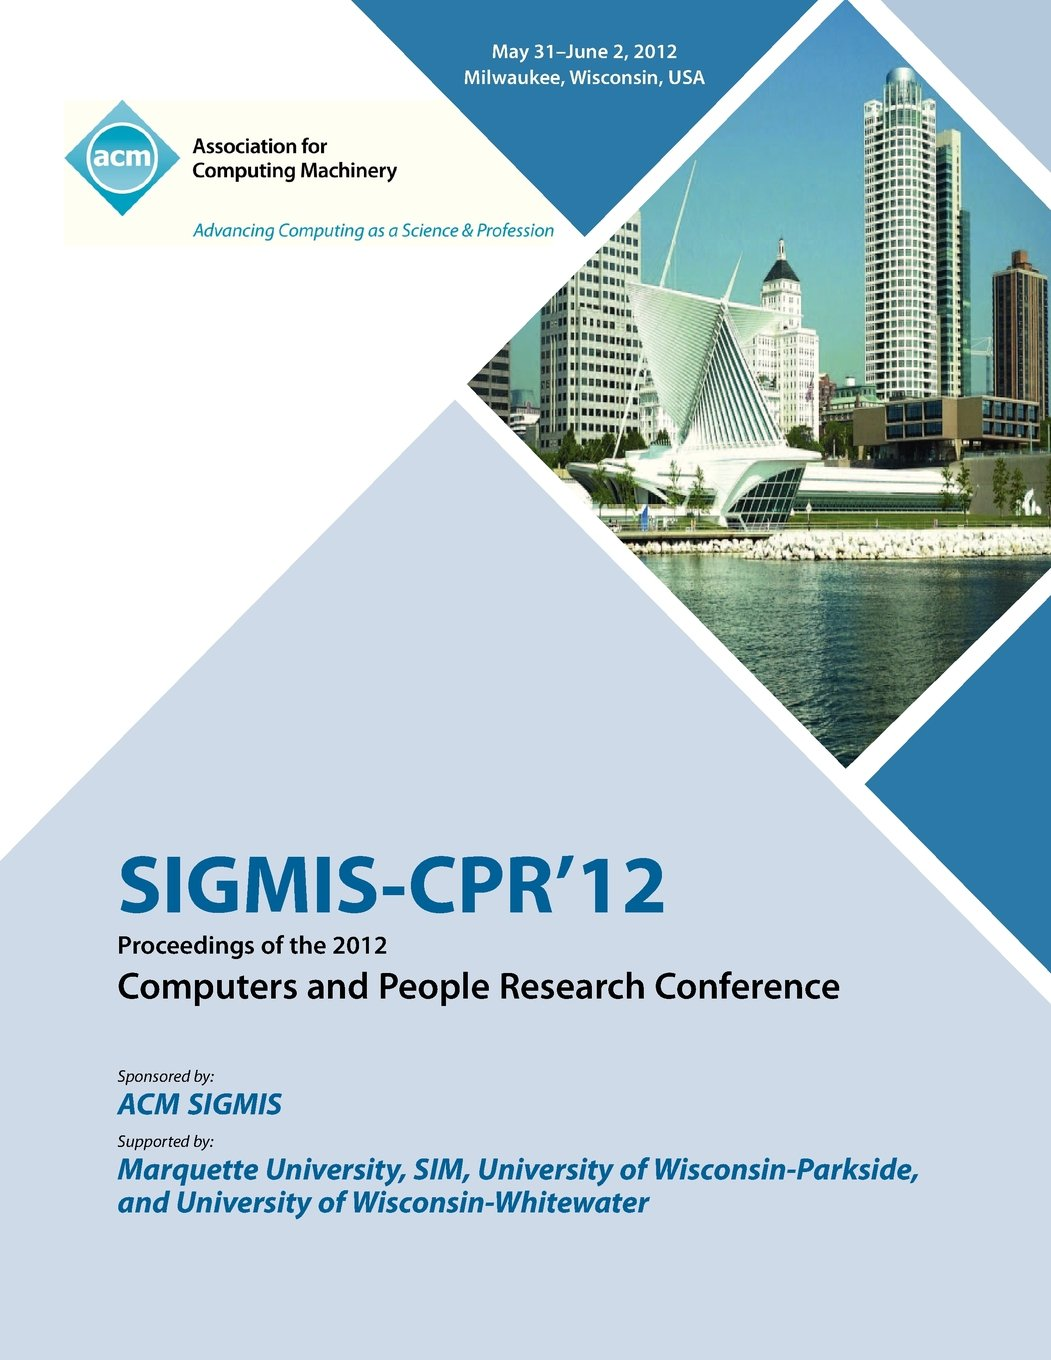 SIGMIS-CPR 12 Proceedings of the 2012 Computers and People Research Conference pdf